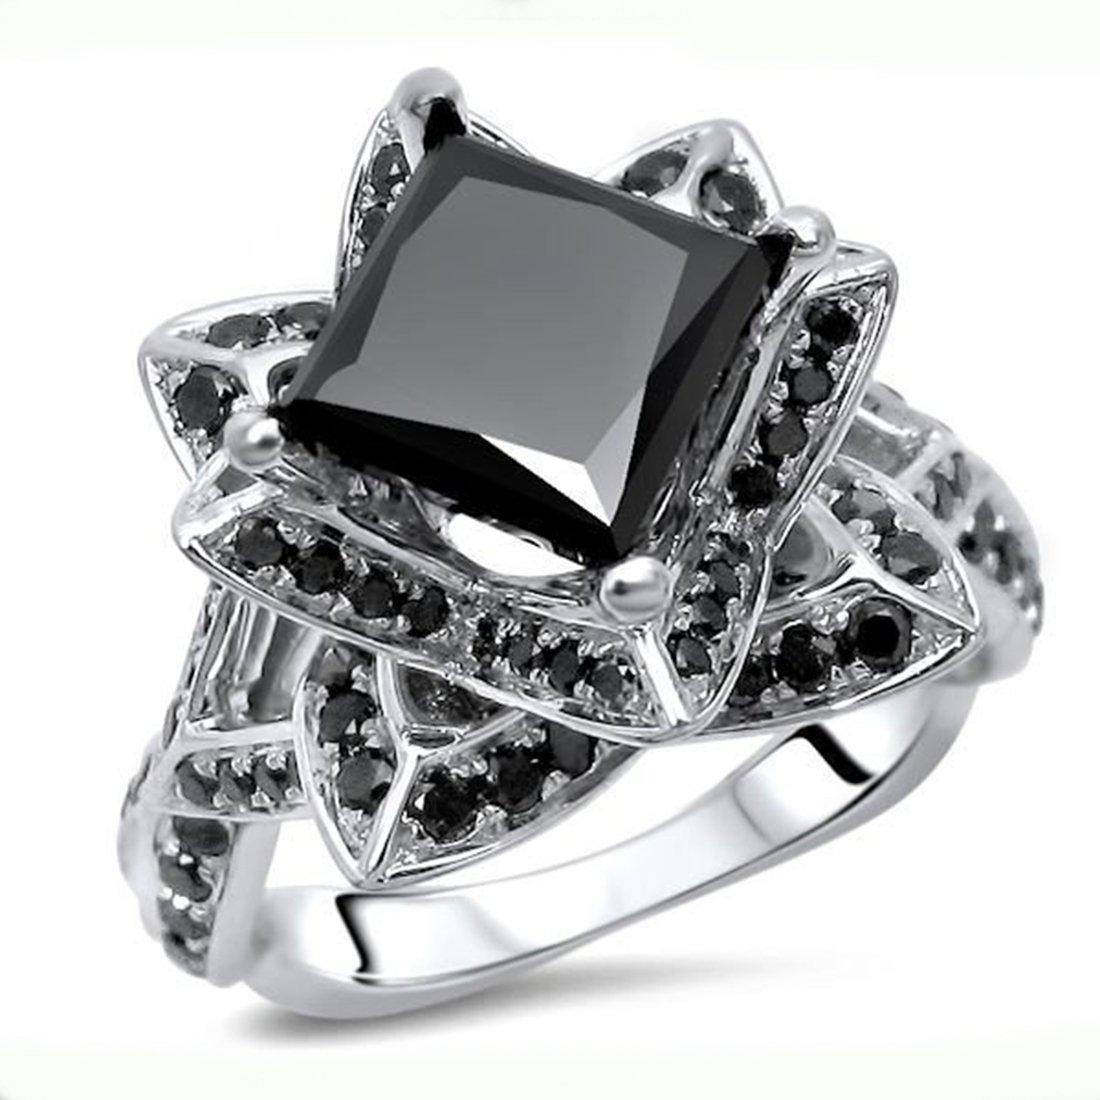 Smjewels 2.55 Ct Black Princess Cut Sim.Diamond Lotus Flower Engagement Ring 14K White Gold Fn